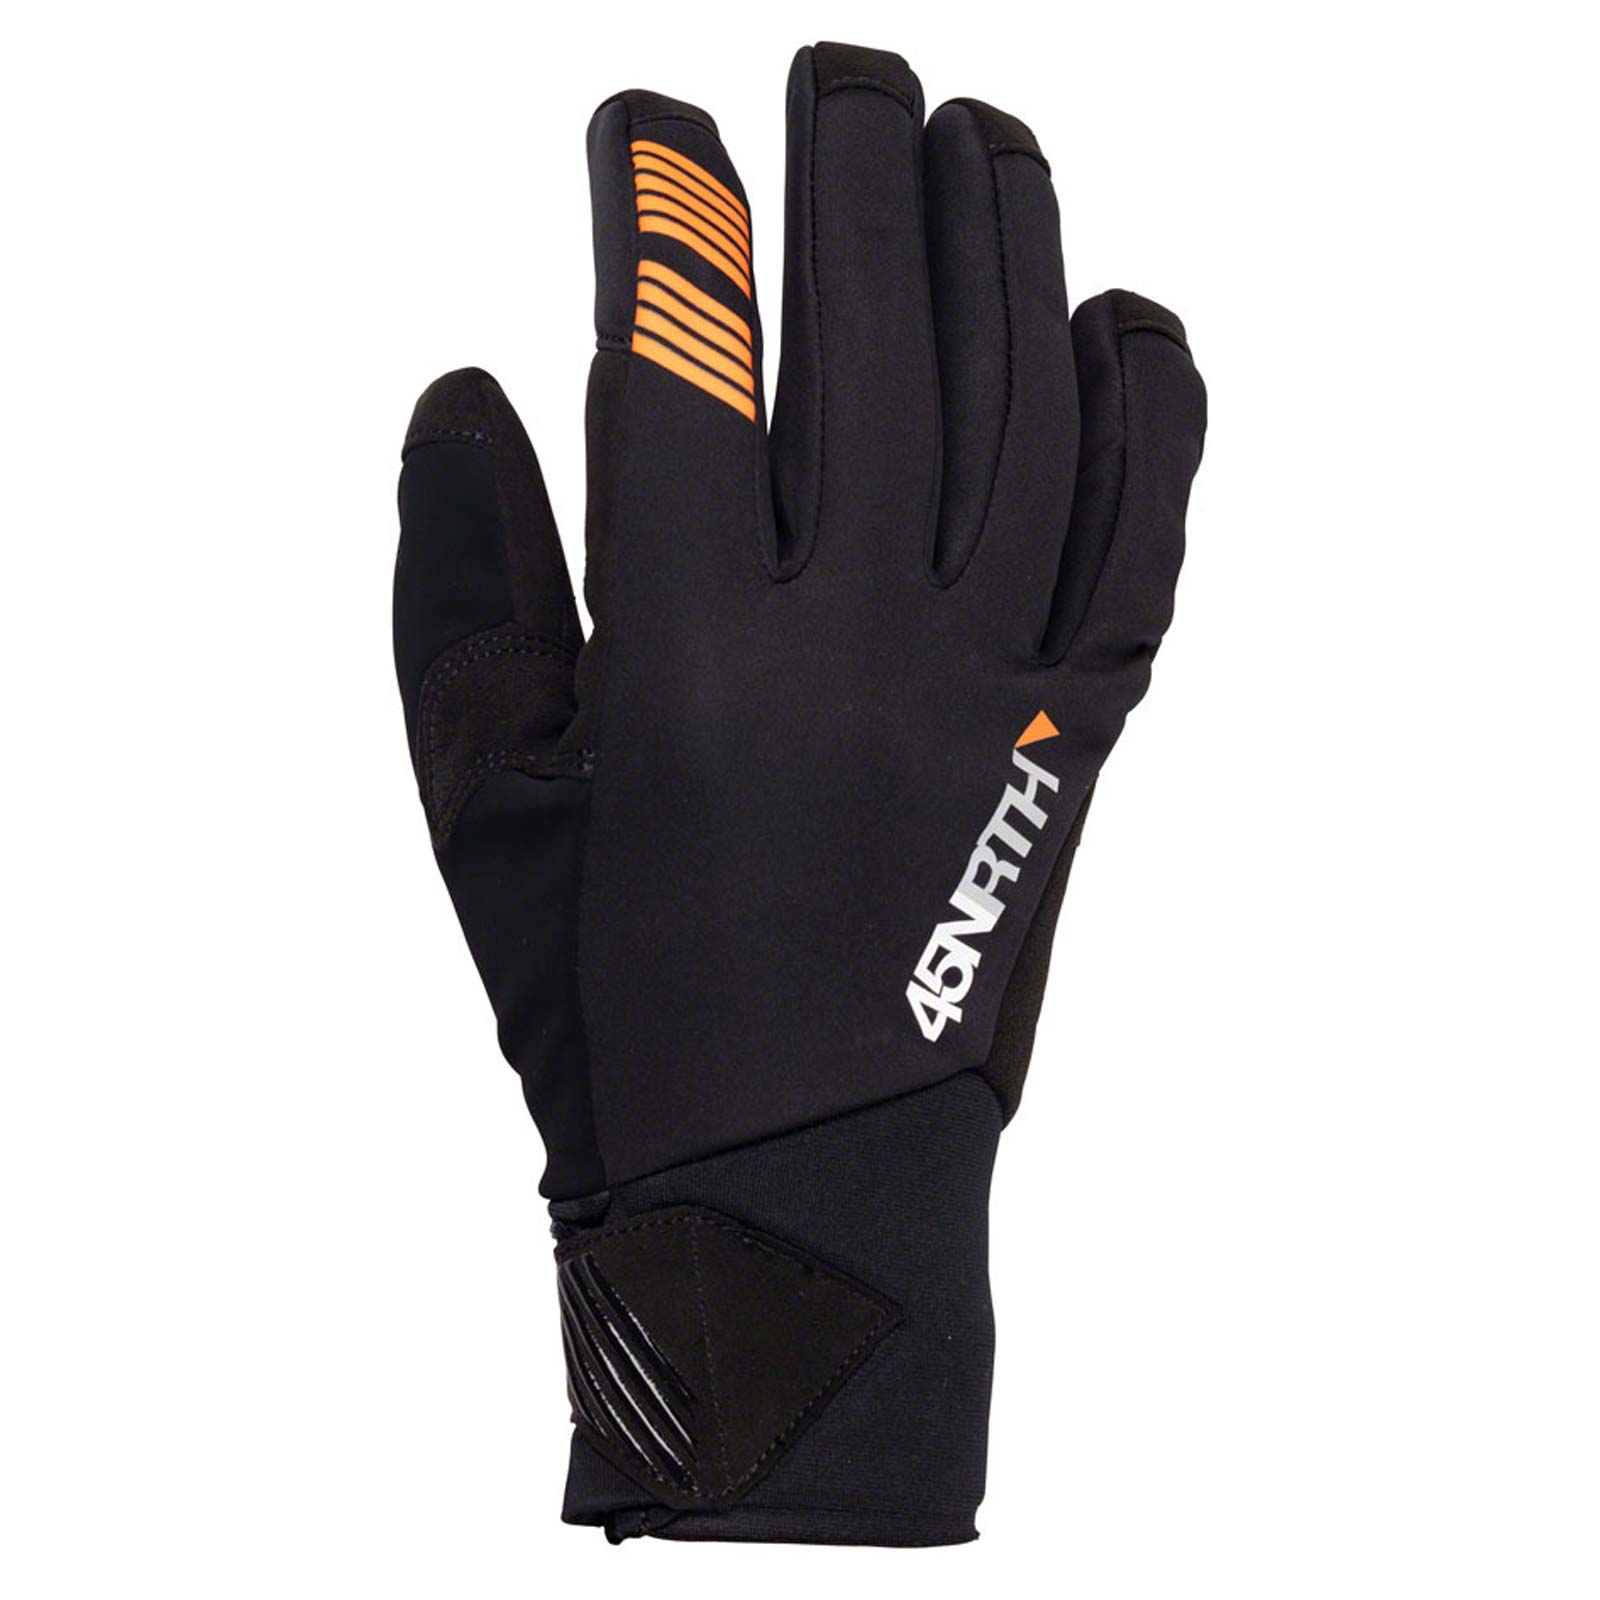 45NRTH Nokken Gloves - Black - Full Finger